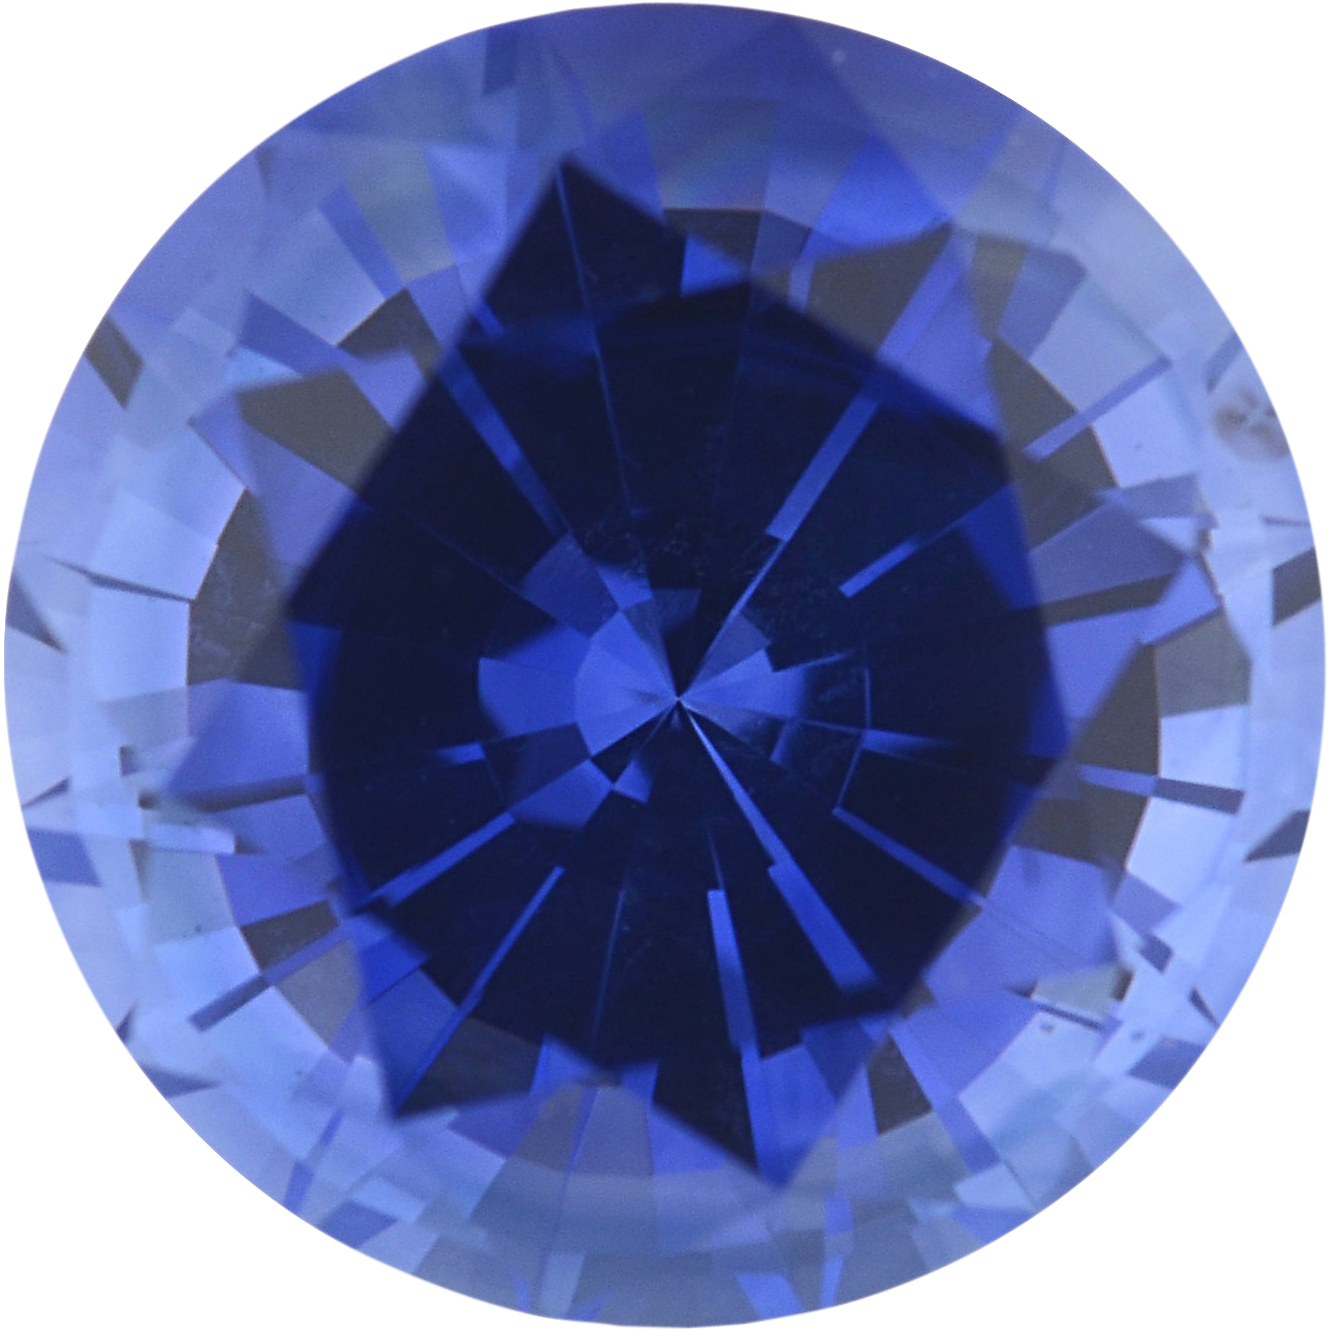 1.51 carats Blue Loose Sapphire Gemstone in Round Cut, 6.75 mm